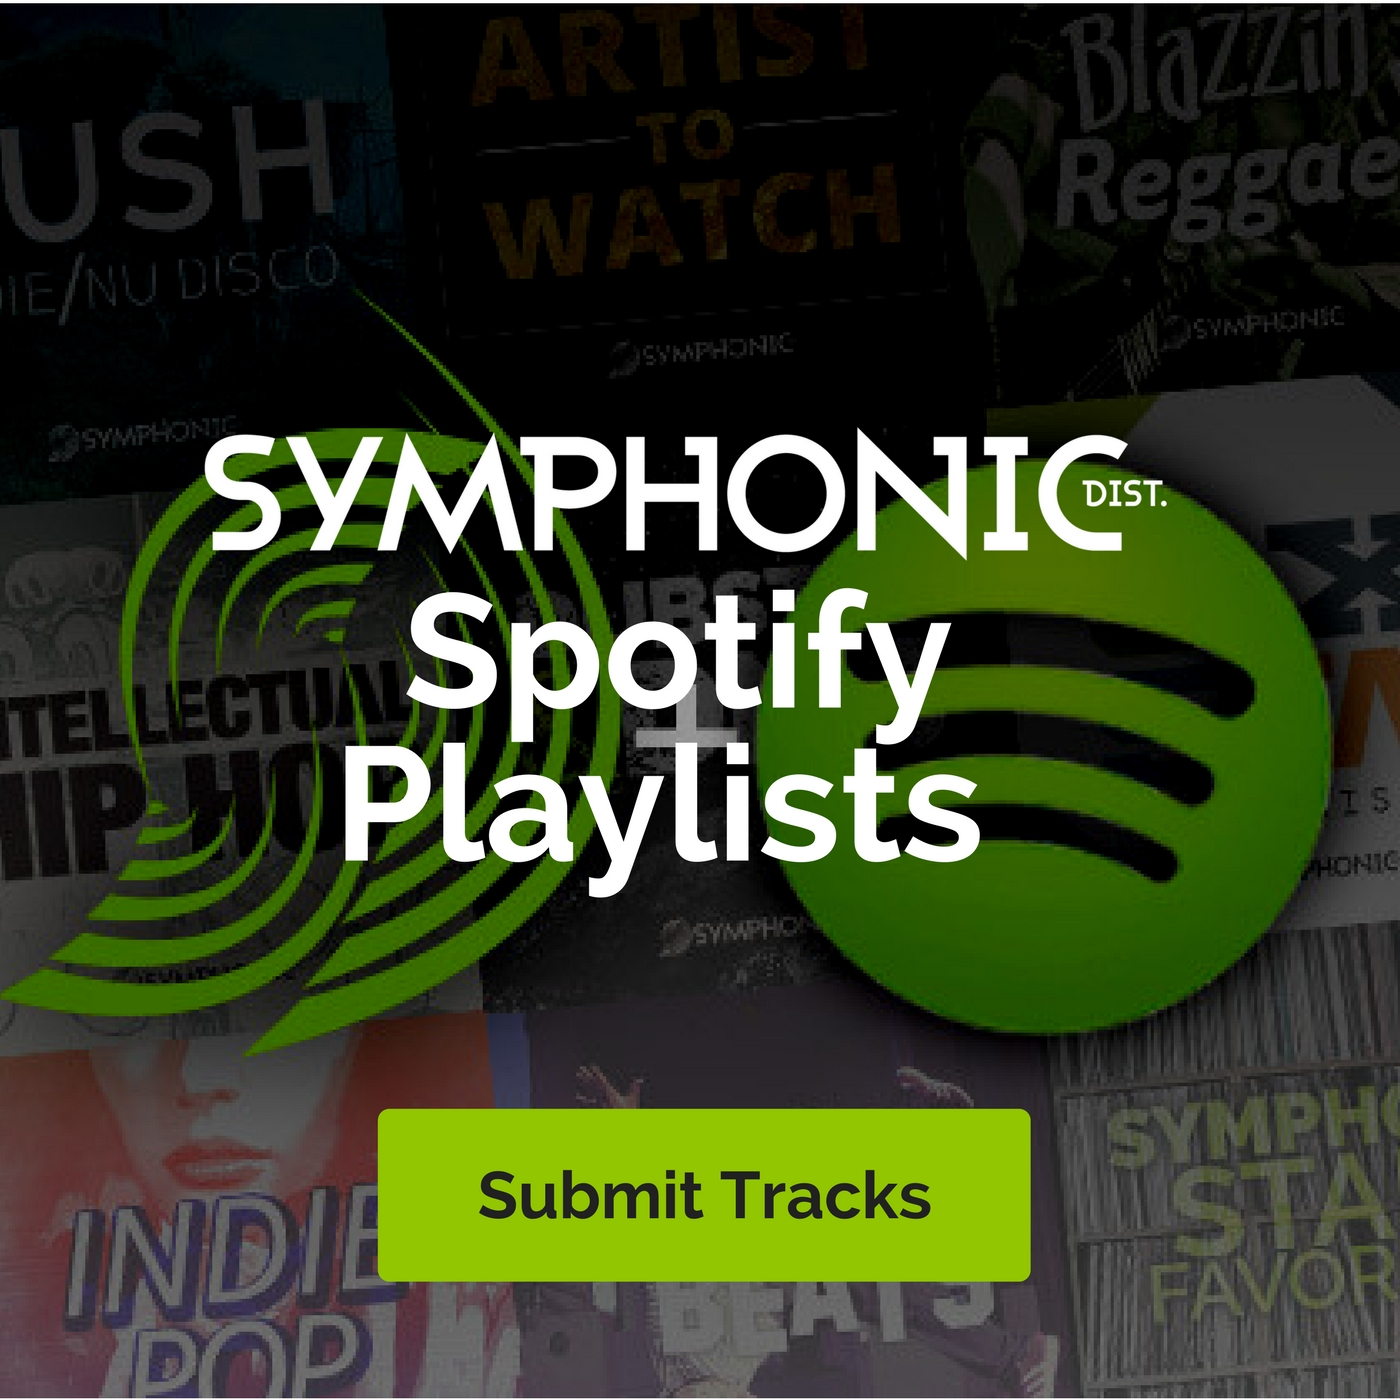 submit to spotify playlists